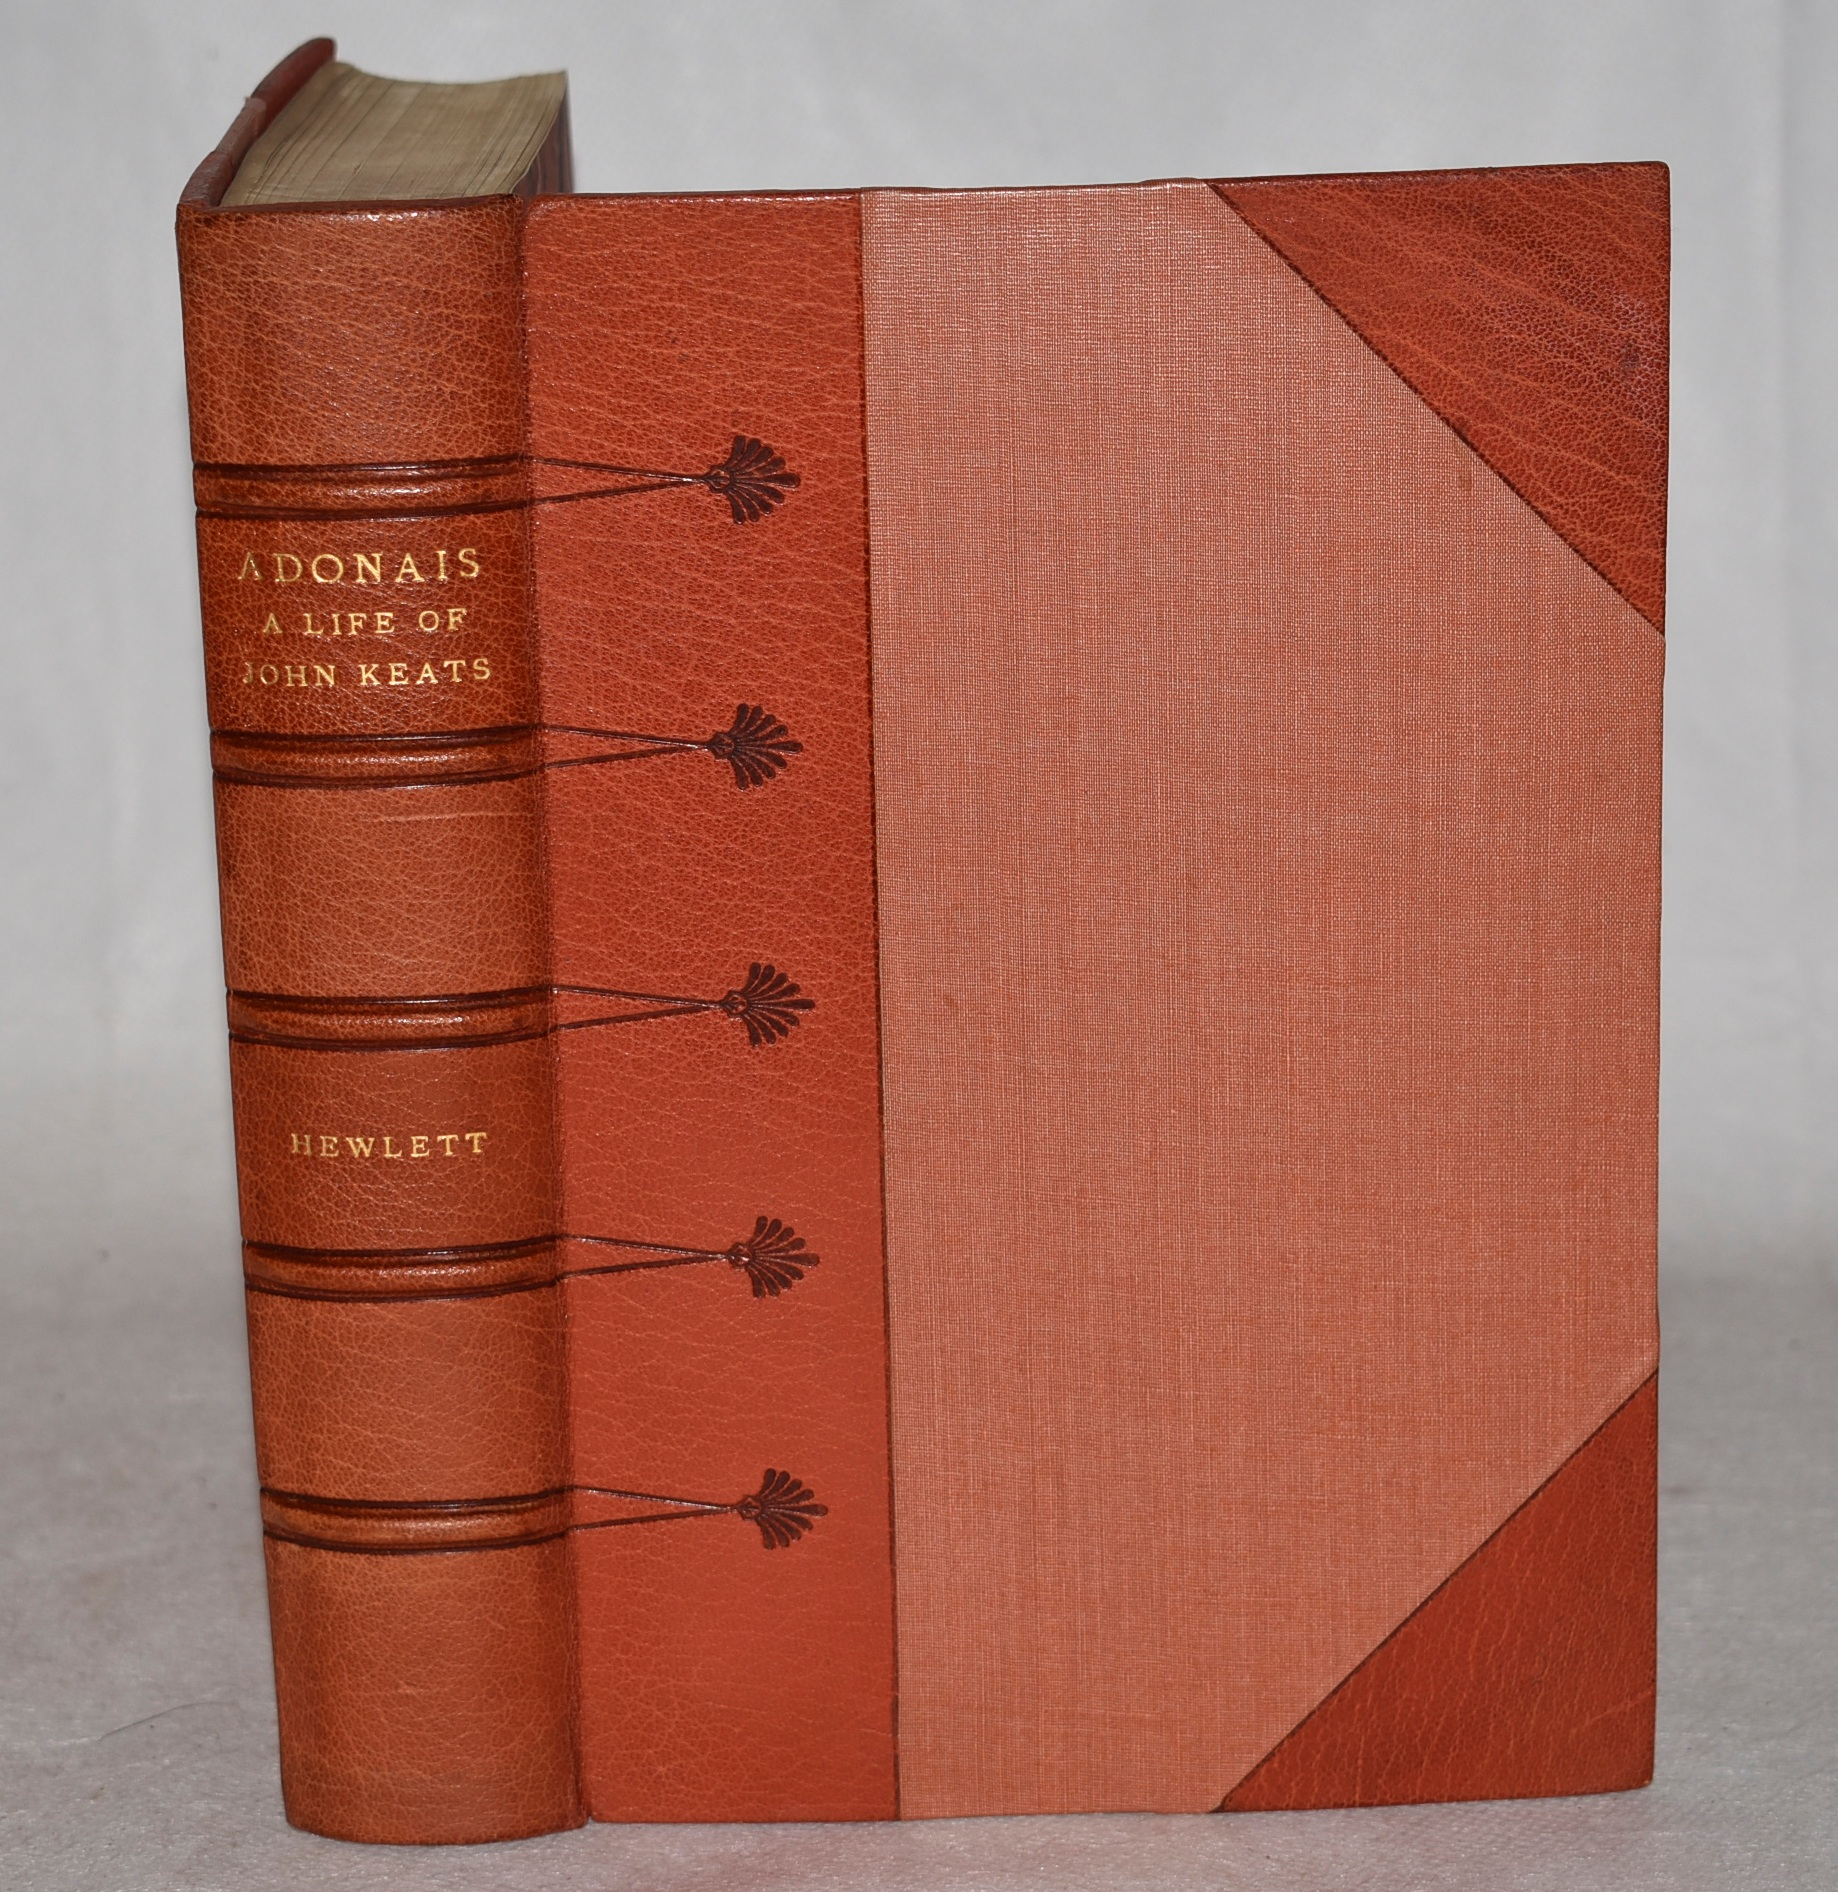 Image for Adonais. A Life of John Keats. Illustrated. In Leather Fine Binding.